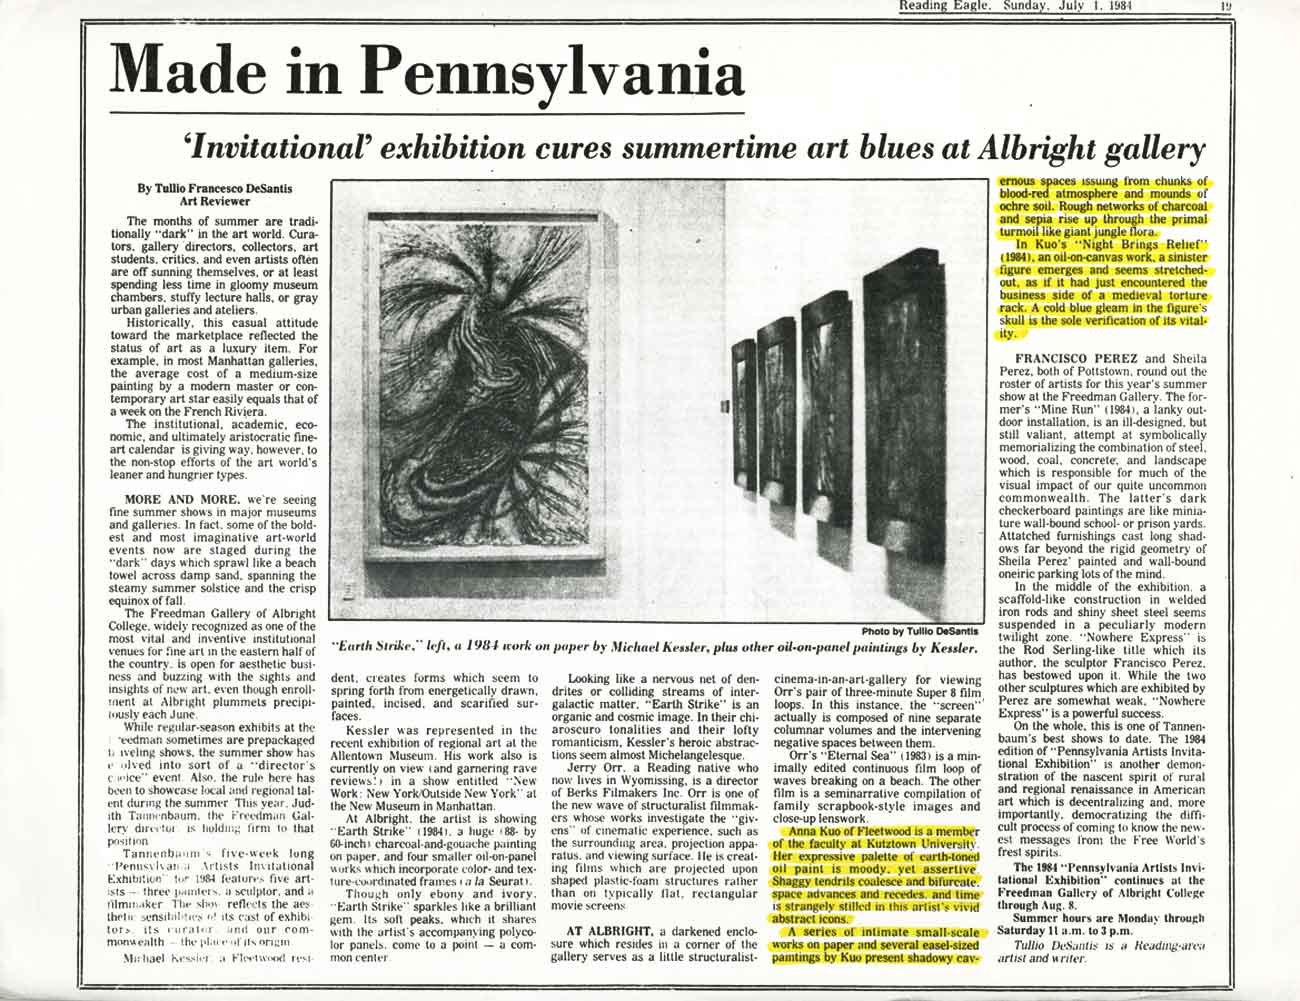 Made in Pennsylvania, article